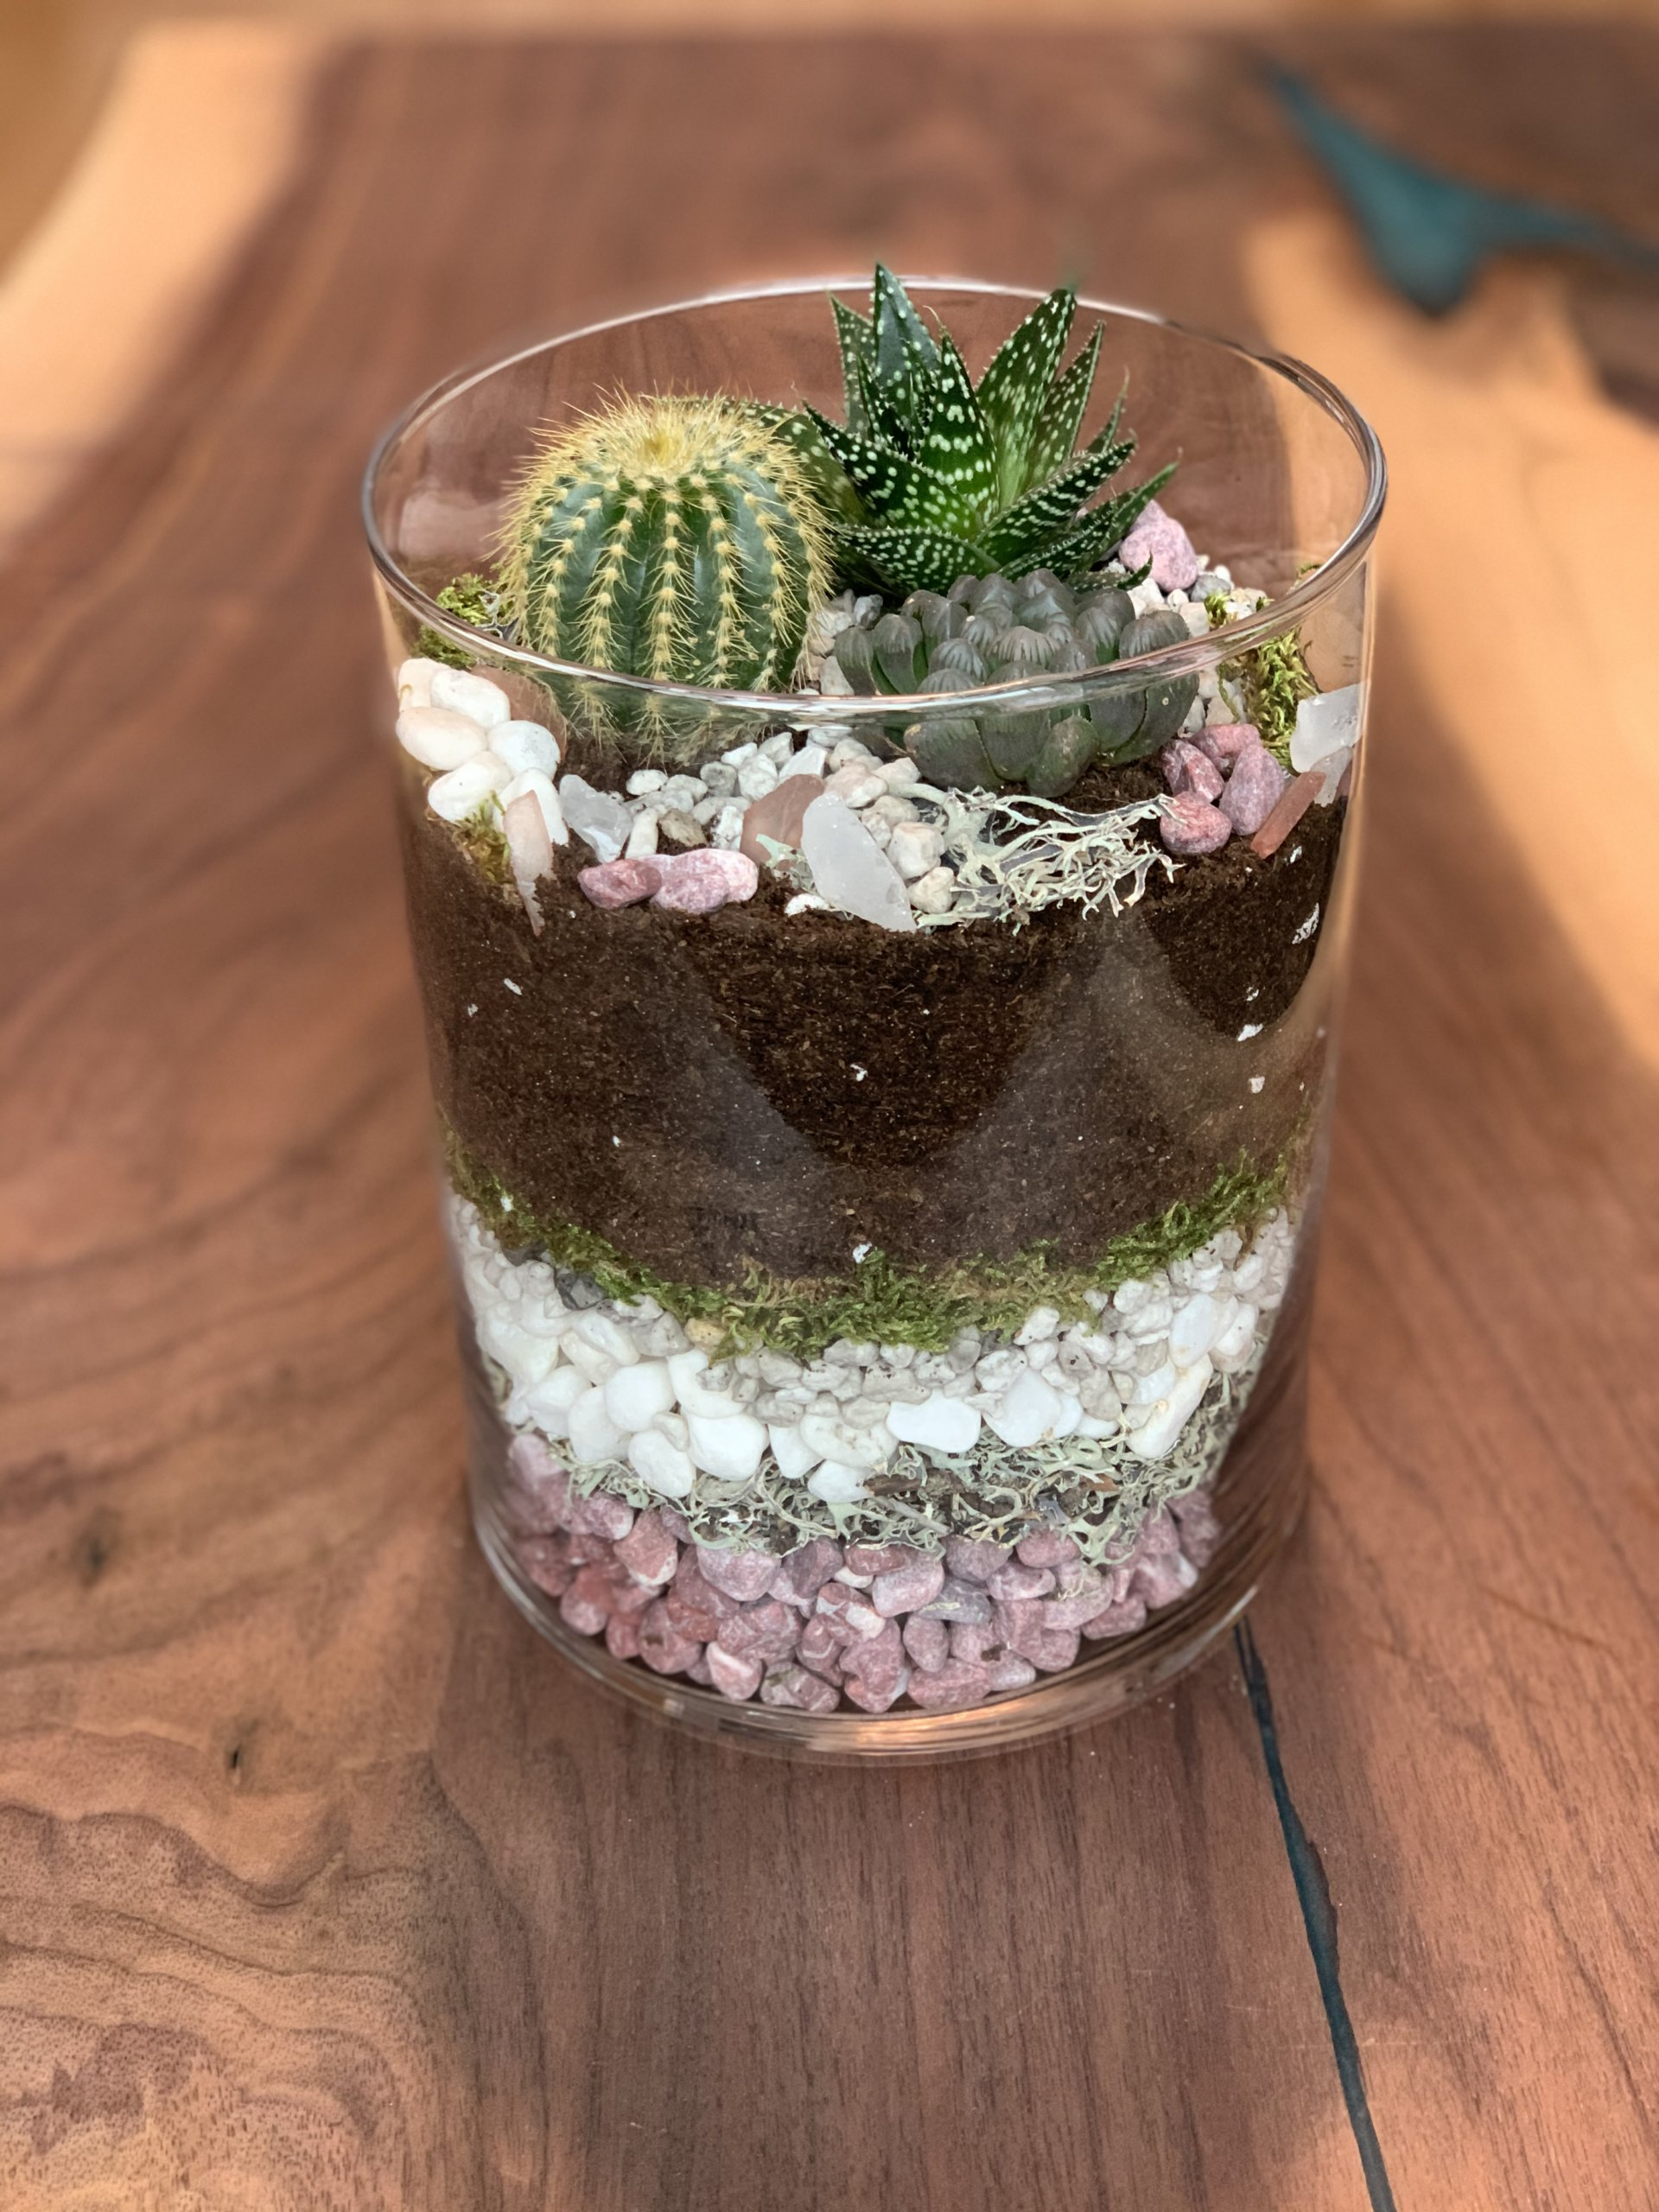 Decorative succulent terrarium display